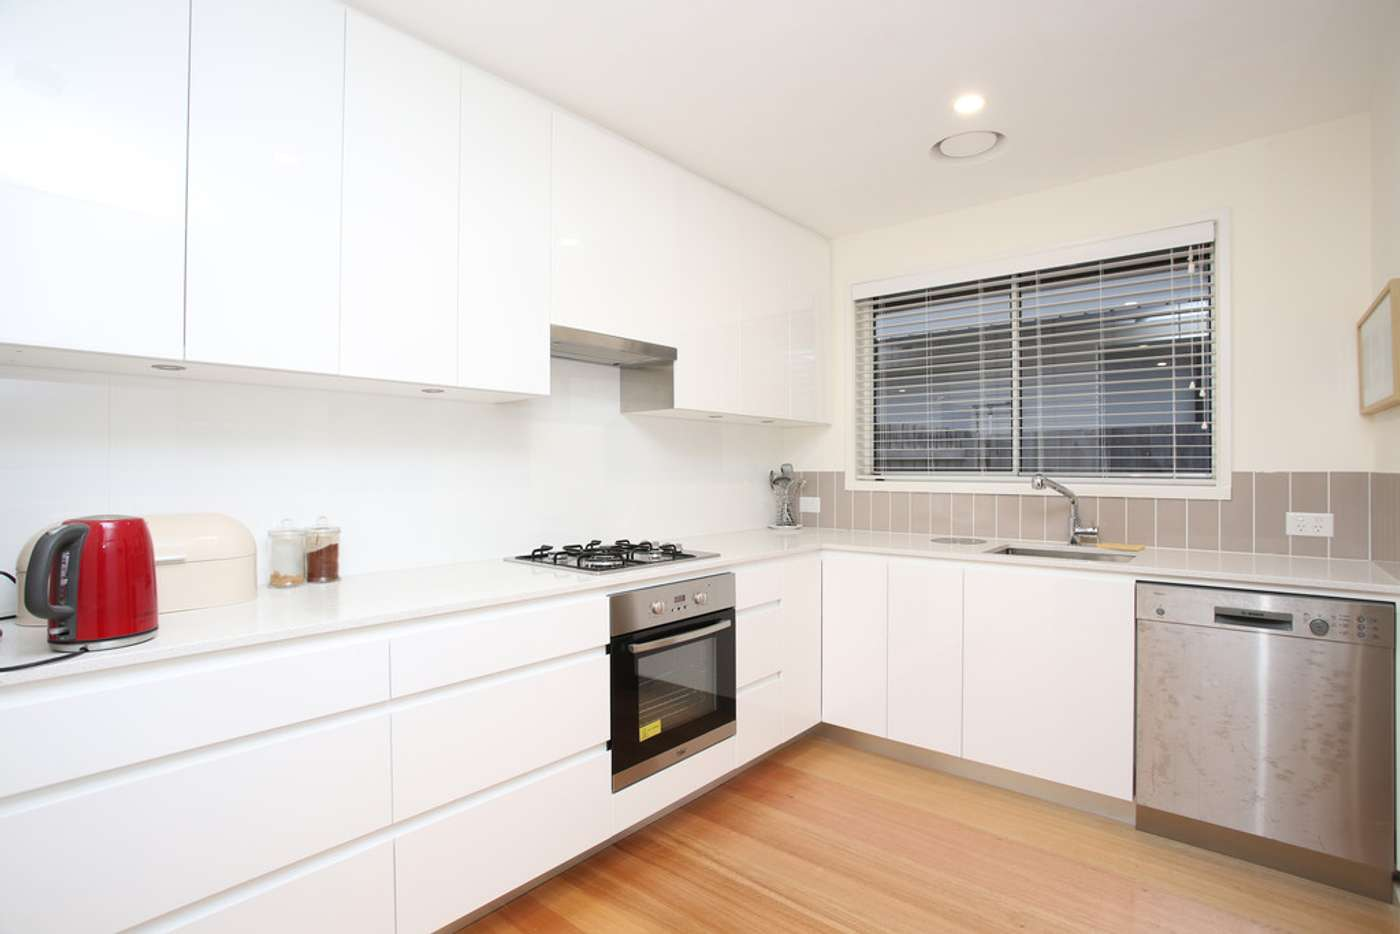 Main view of Homely unit listing, 4/94-96 Cavanagh Street, Cheltenham VIC 3192